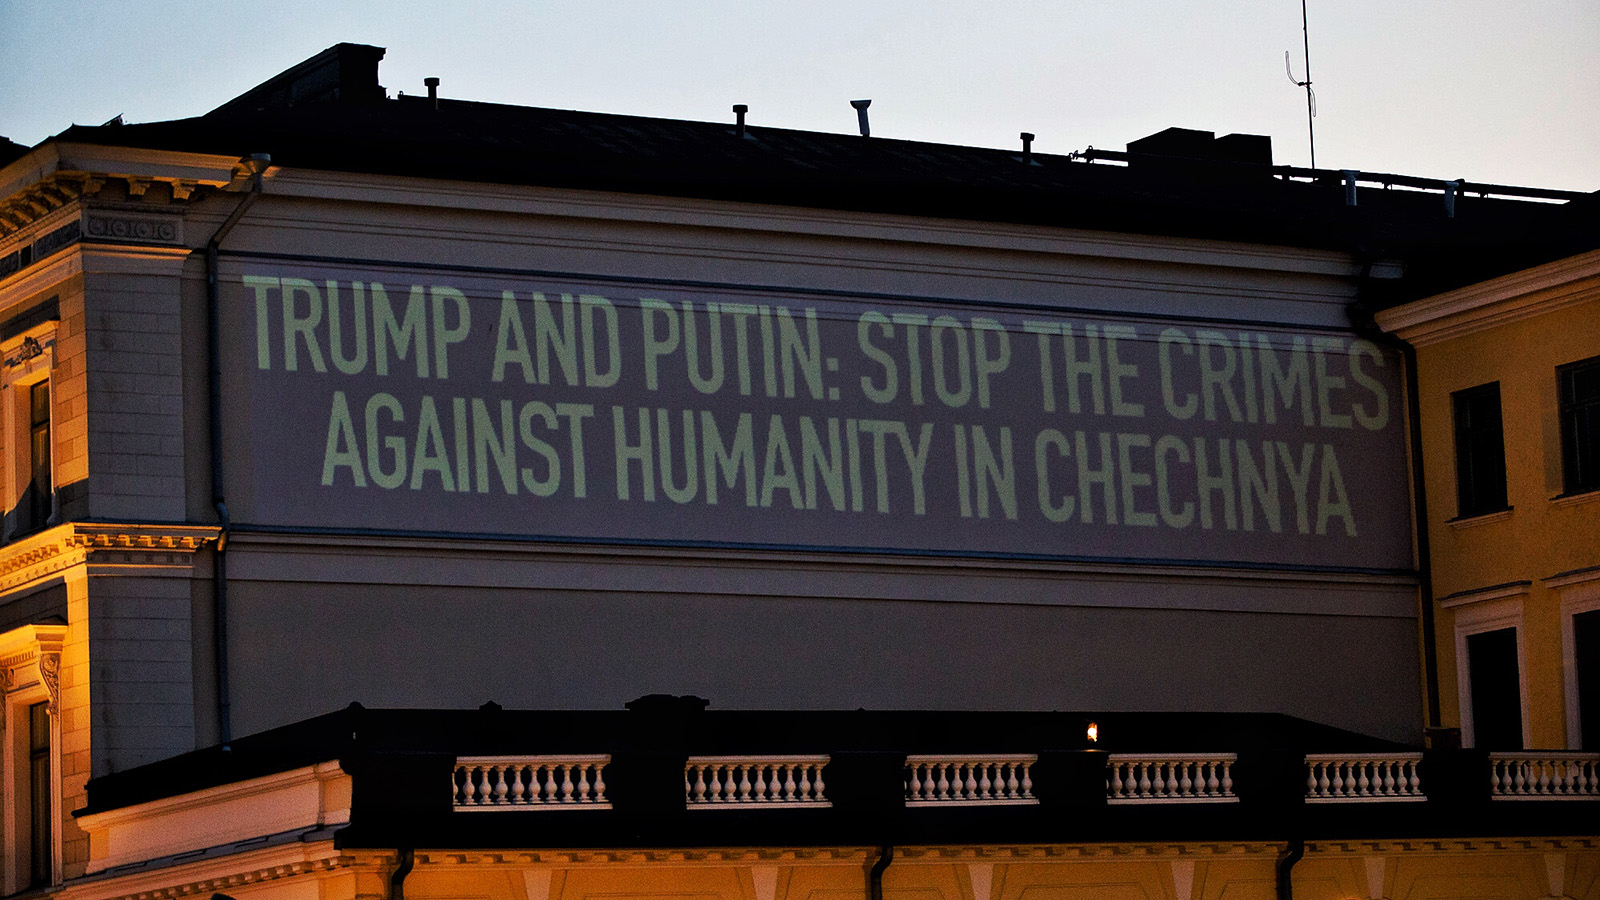 HRC Confronts Trump-Putin With Projection Calling Out Anti-LGBTQ Crimes Against Humanity in Chechnya